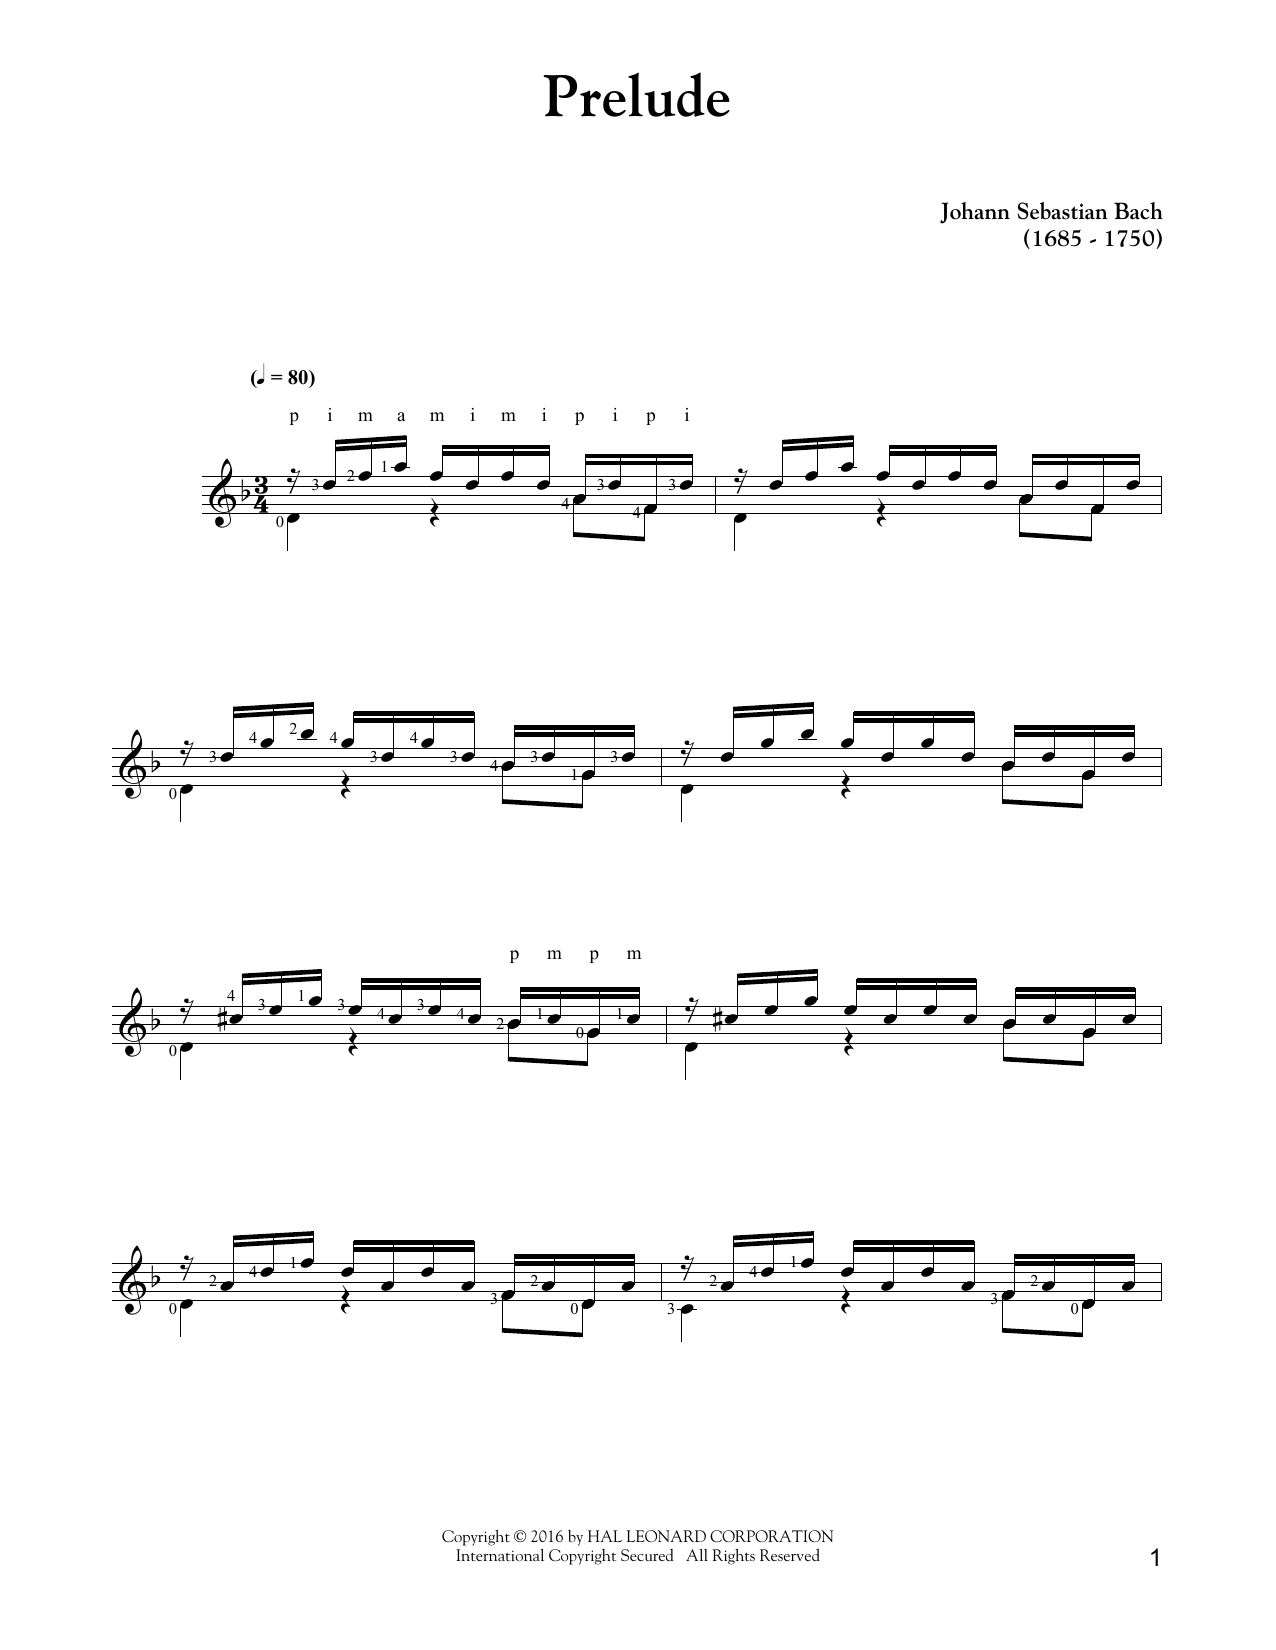 Prelude BWV 999 Sheet Music